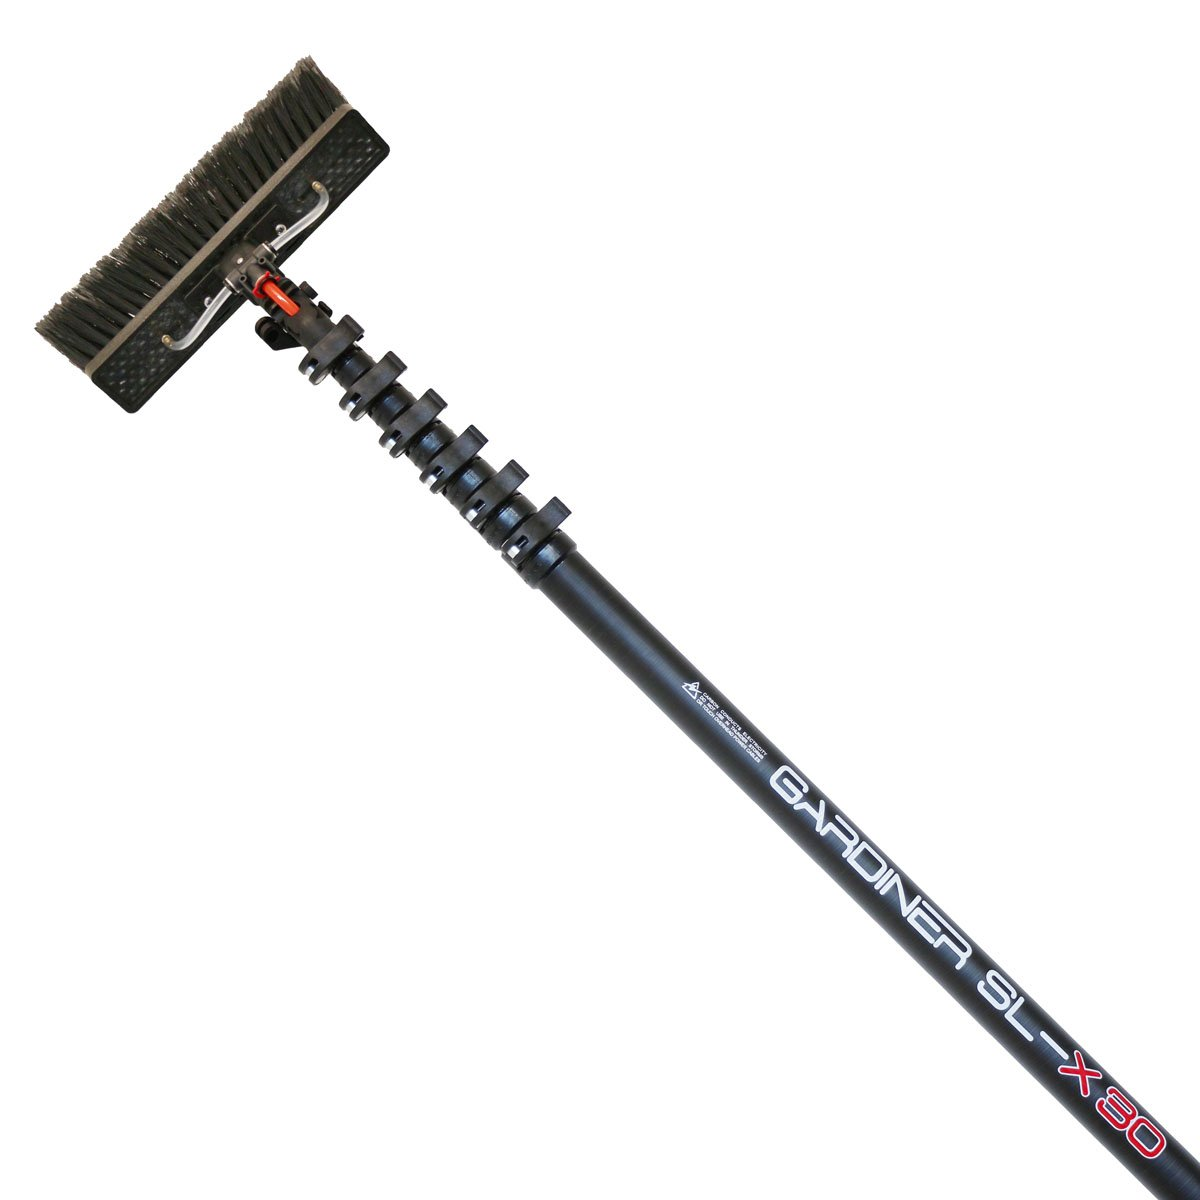 Telescopic Poles - Water-Fed Poles & Brushes - All Products